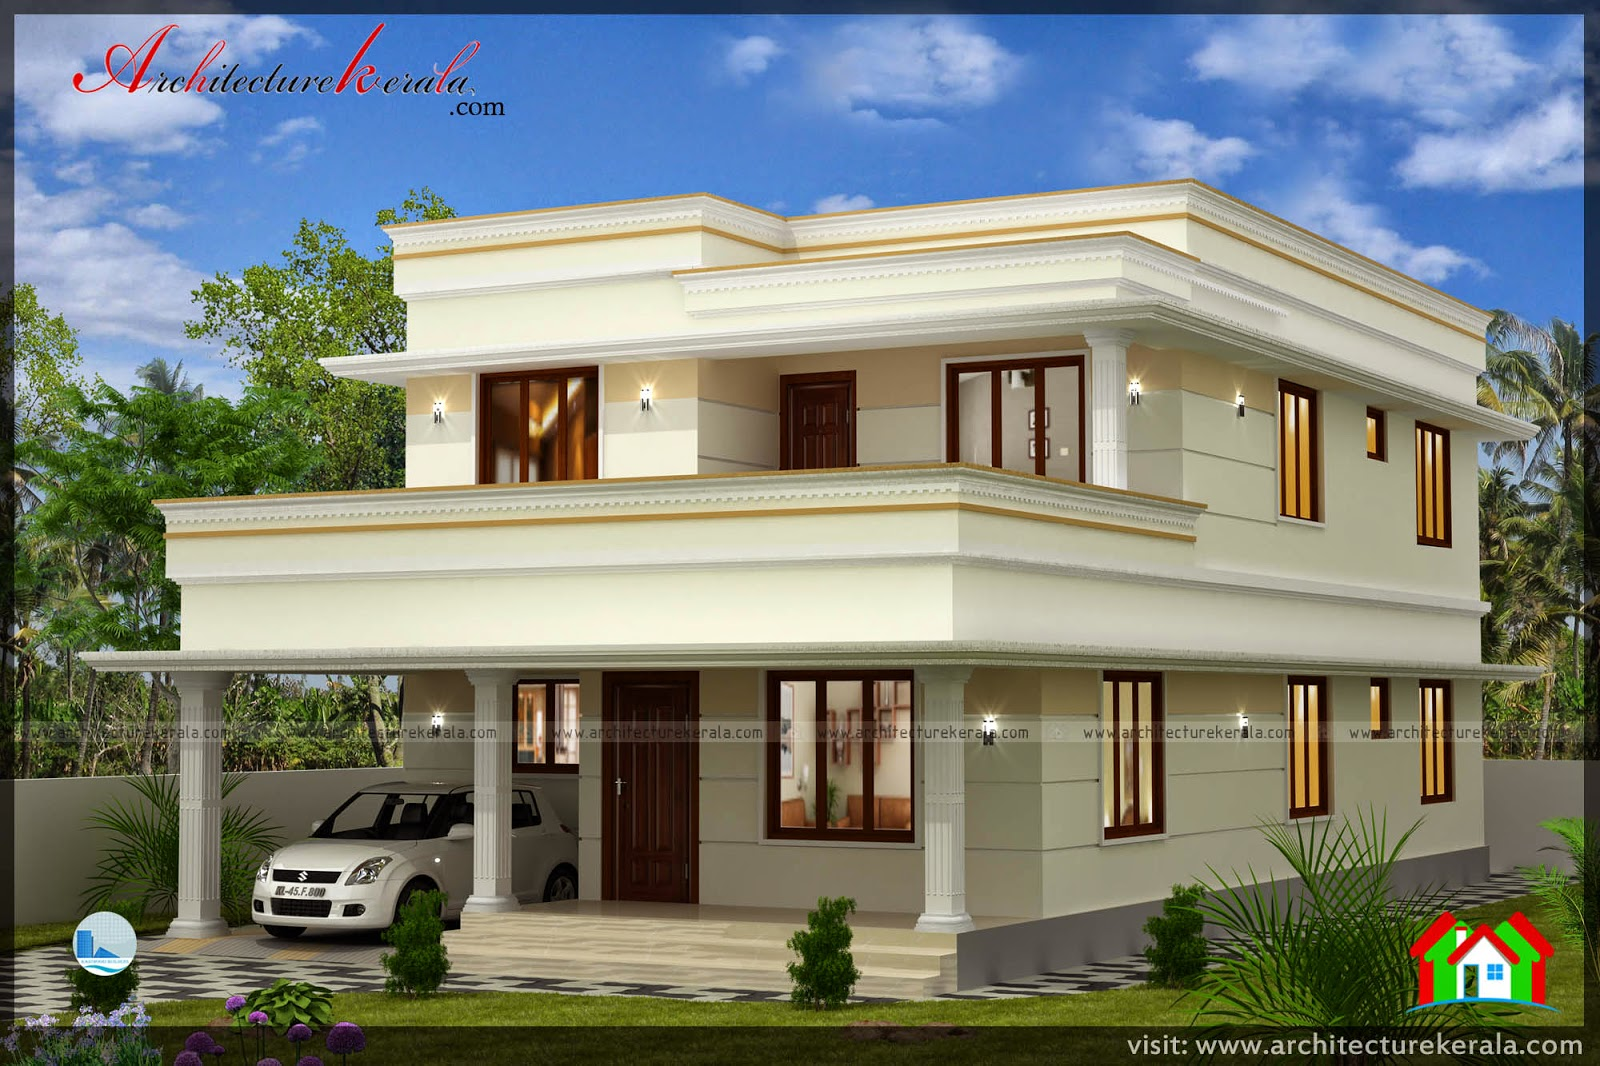 House Plan 4 Bedrooms Architecture Kerala